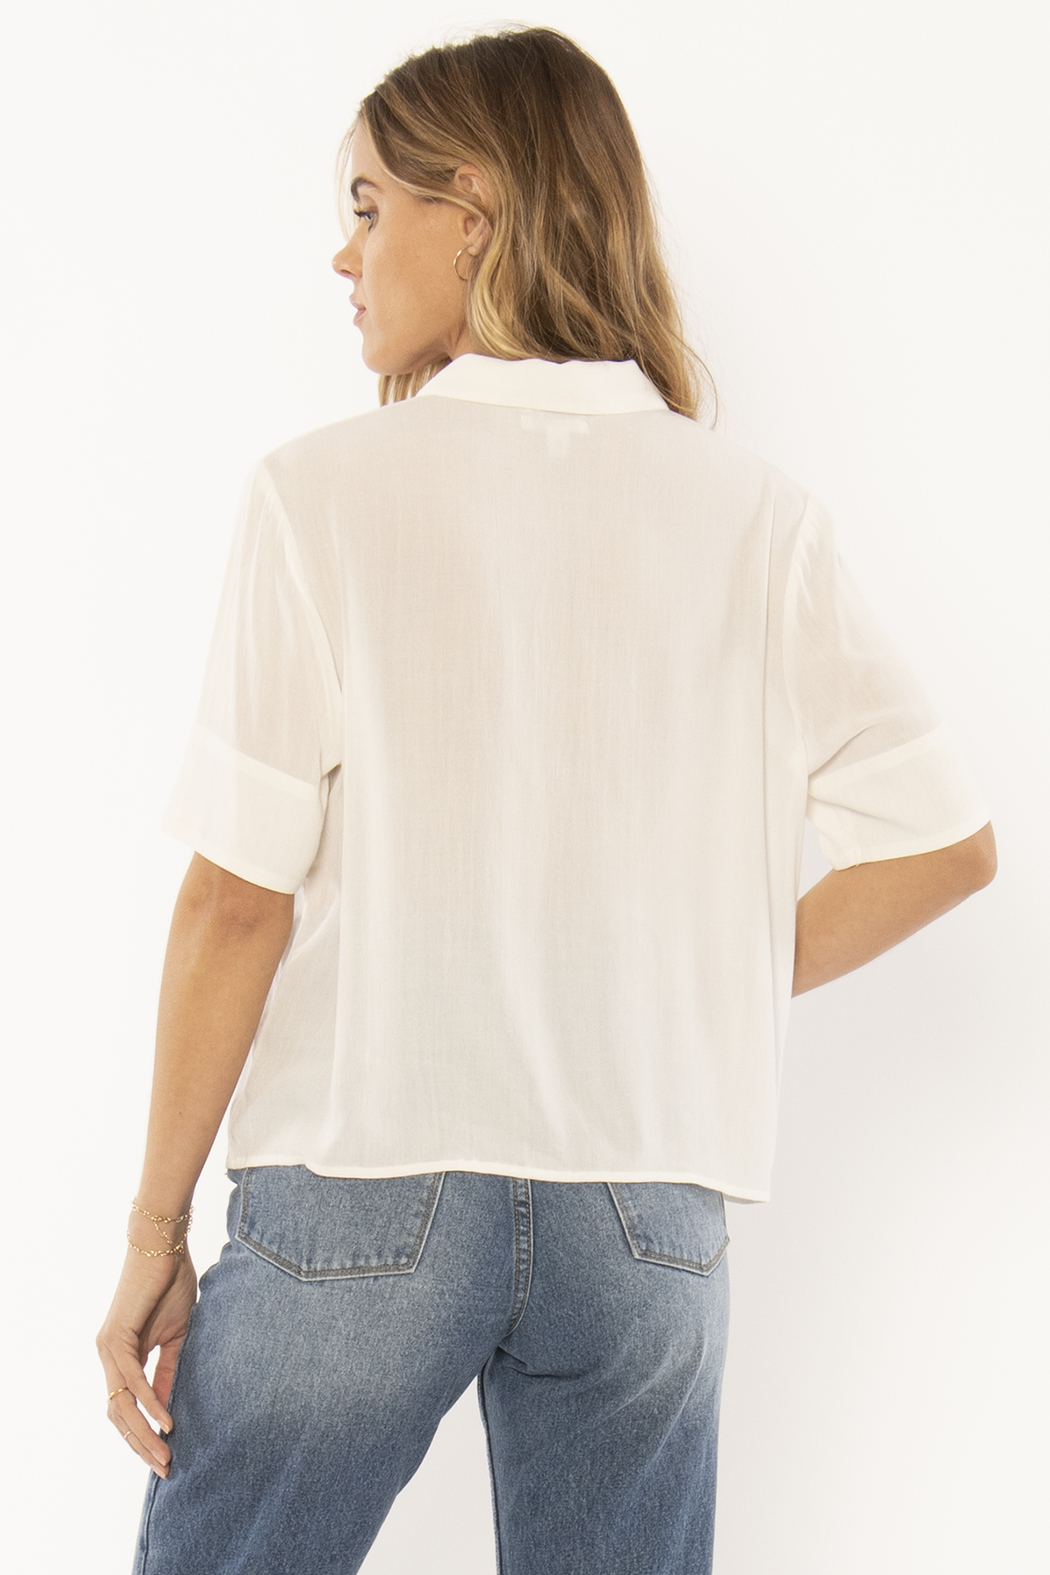 AMUSE SOCIETY Allora Woven Blouse - Front Full Image